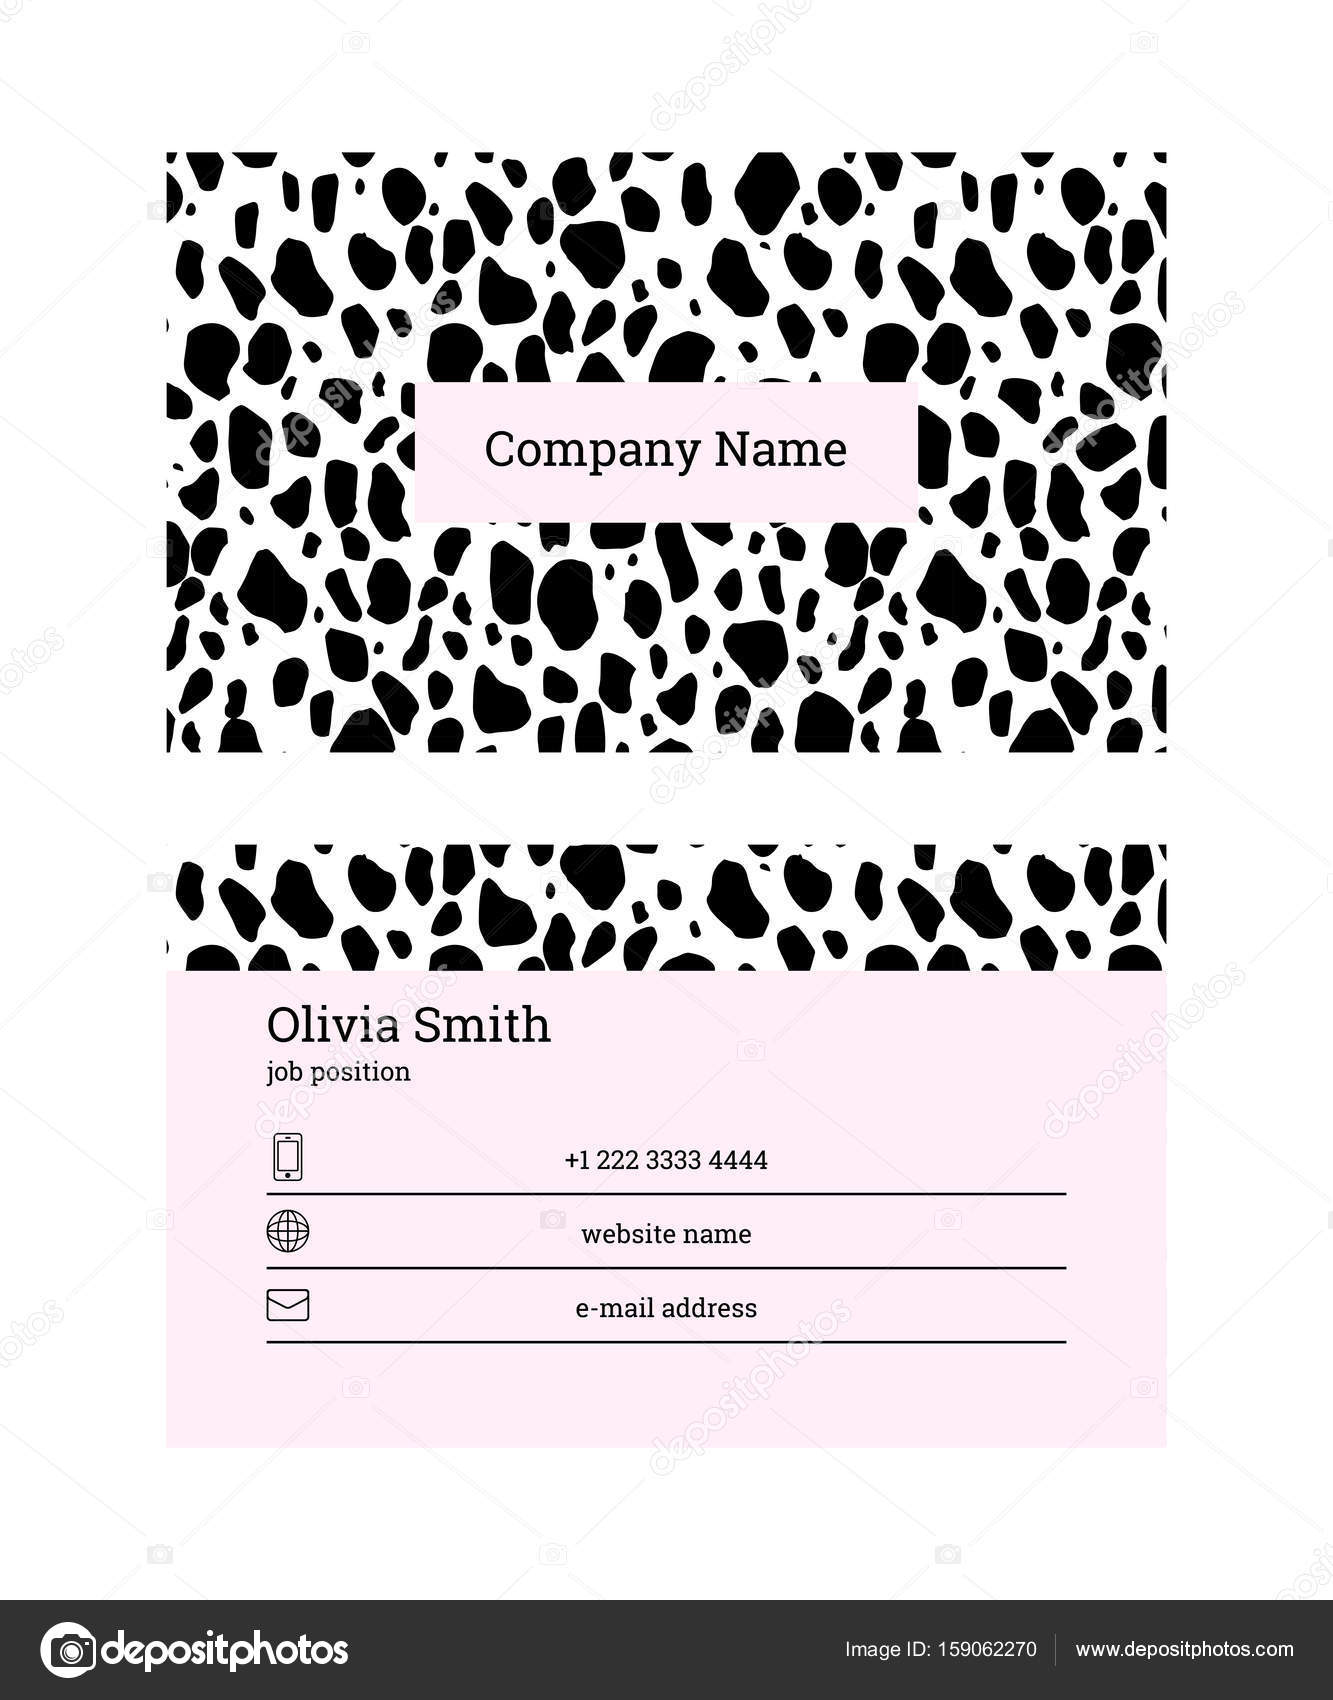 Black and pink business card template stock vector radionastya black and pink business card template stock vector flashek Choice Image